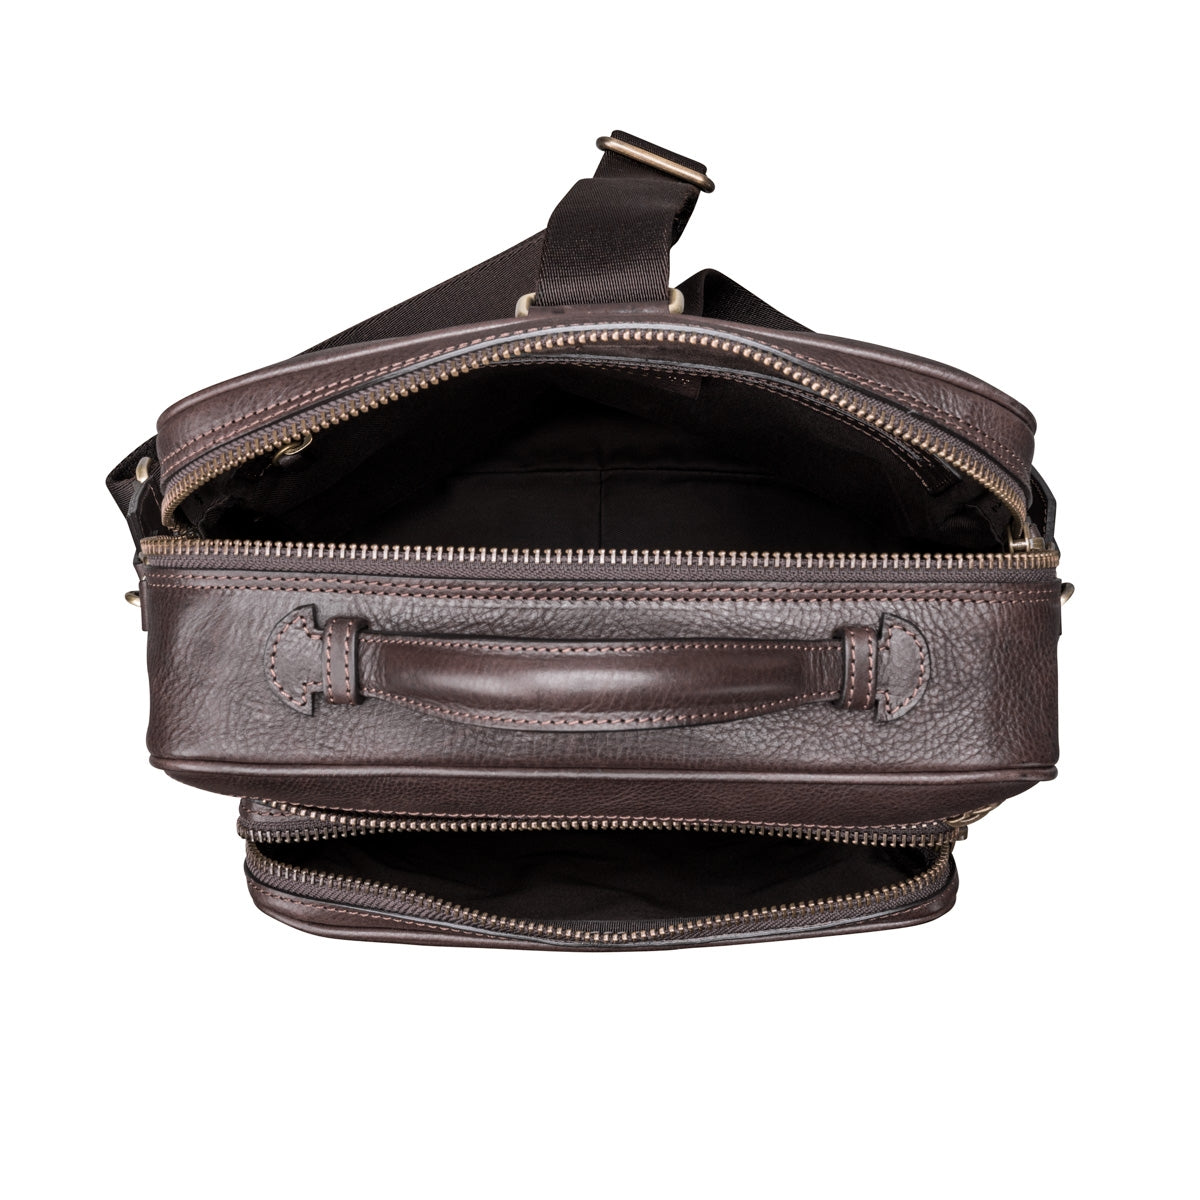 Image 7 of the 'SantinoL' Men's Brown Leather Convertible Backpack Shoulder